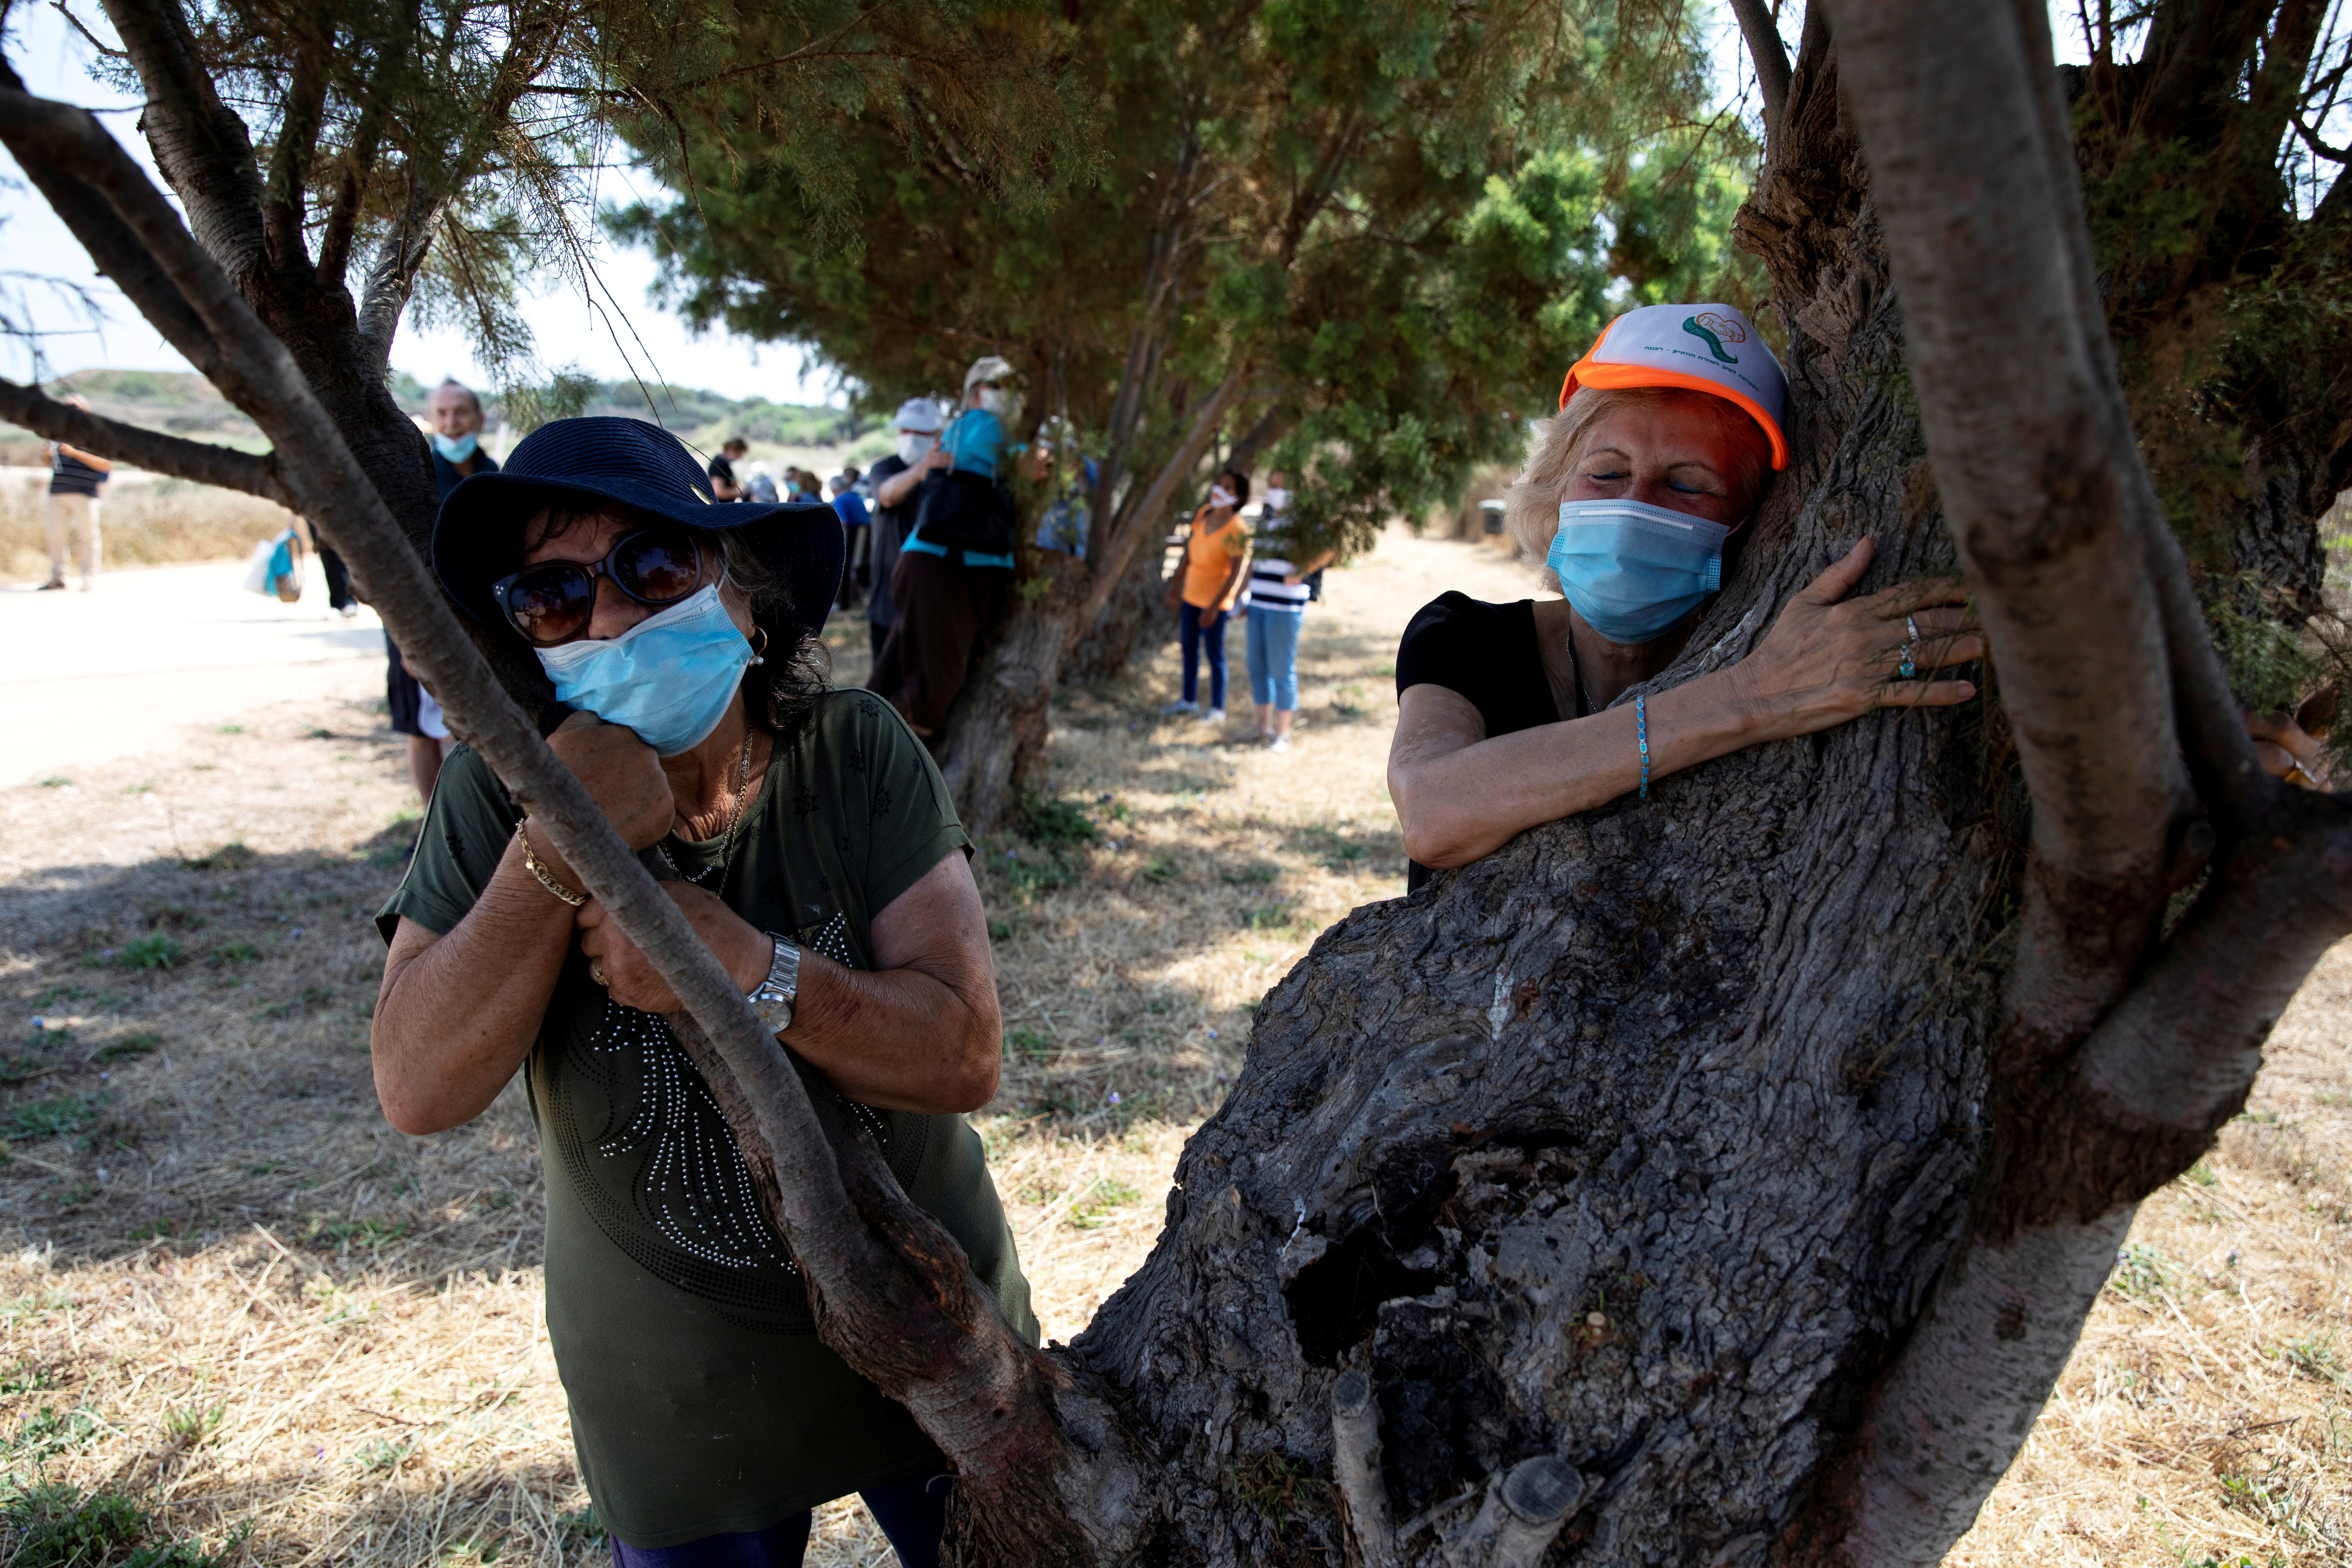 People take part in a campaign by Israel's Nature and Parks Authority calling on Israelis to join sightseeing tours and find comfort in tree hugging amid a spike in the coronavirus disease (COVID-19), in Apollonia National Park, near Herzliya, Israel July 7, 2020. Picture taken July 7, 2020. REUTERS/Ronen Zvulun     TPX IMAGES OF THE DAY - RC2ASH9LBMND